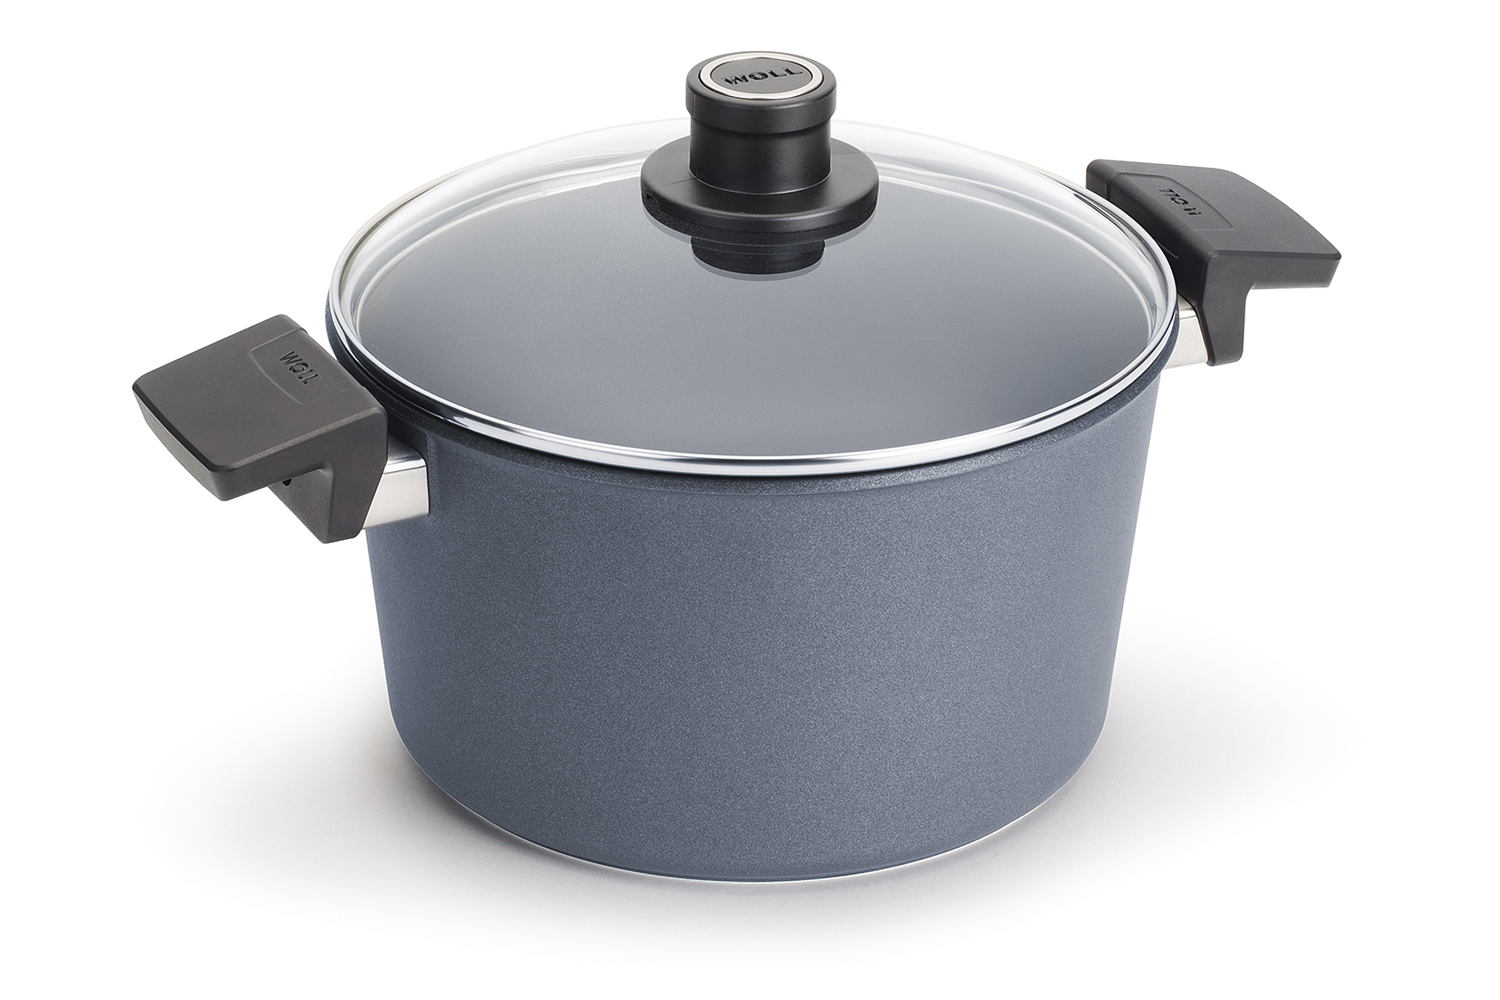 Woll Diamond Plus Nonstick Induction Stock Pots